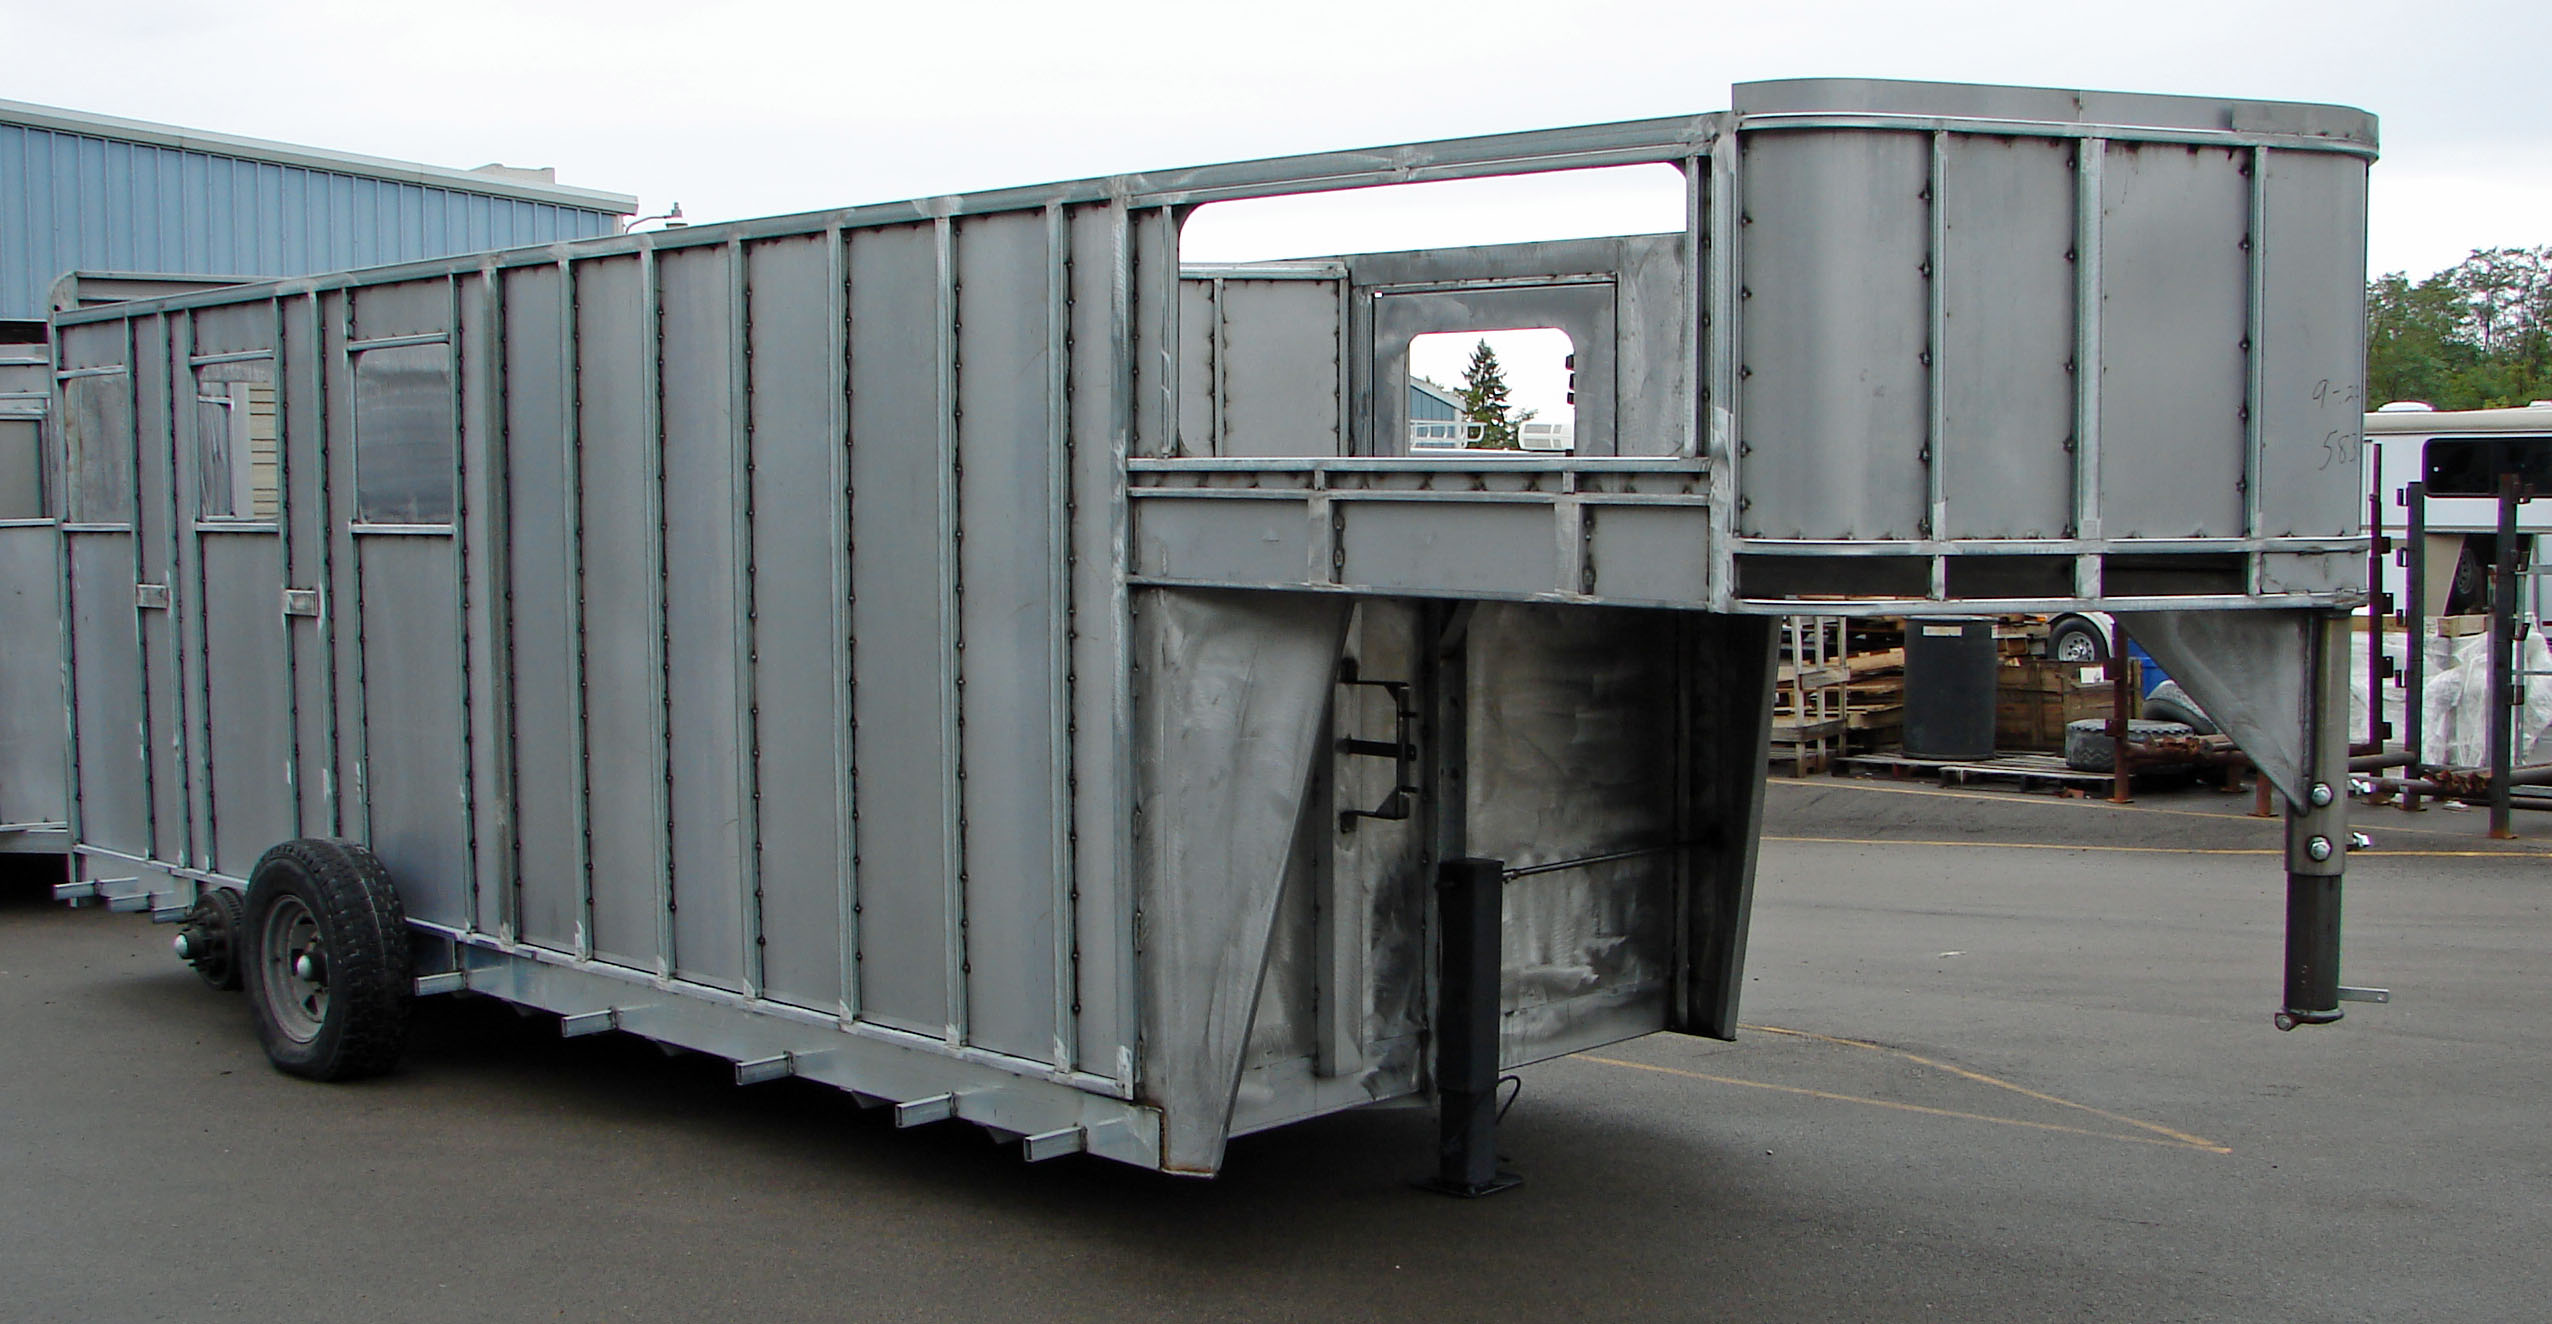 Hawk Horse Trailer Review Welcome To Mrtrailer Com